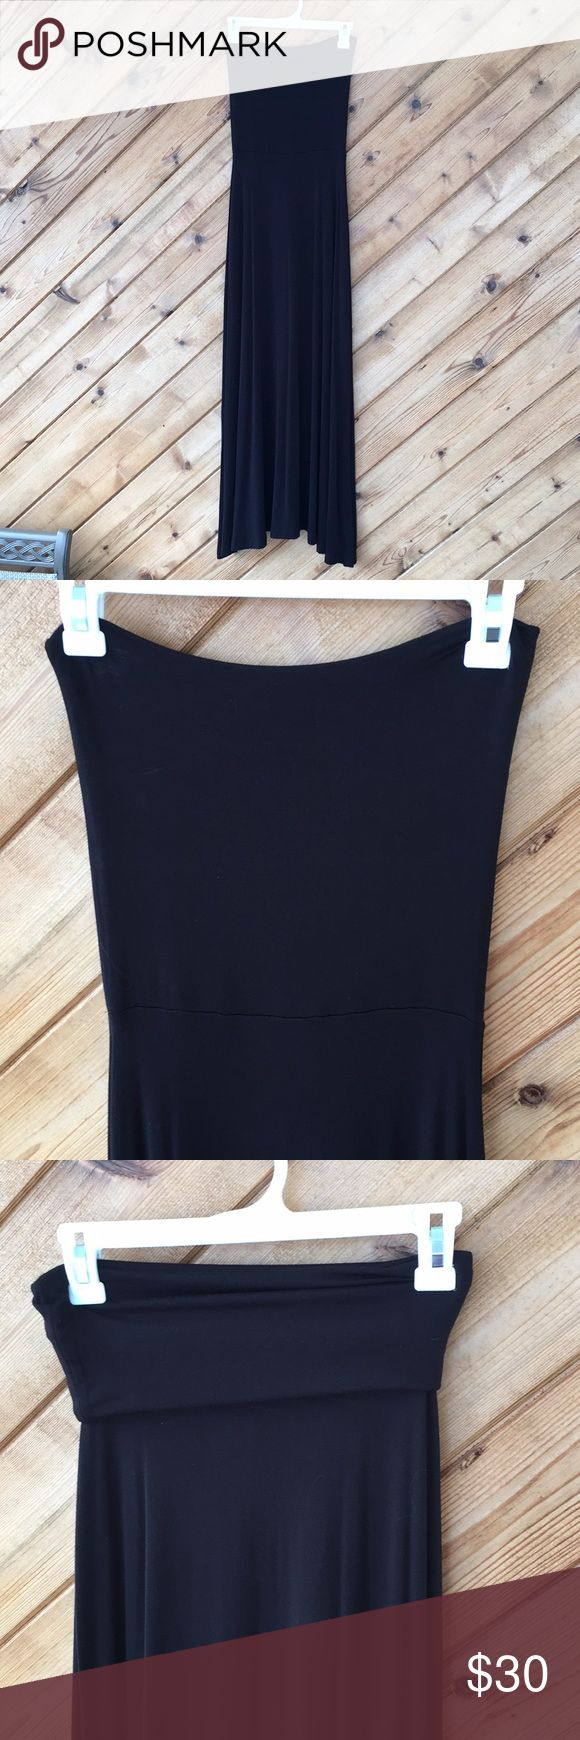 """😍 GAP's 3 in 1 dress / maxi skirt 😍 This is a great find! It can be a strapless maxi dress, or a fold over strapless midi length dress or a maxi skirt! Solid black, size XS (about a size 2) length un-folded to hem is about 49"""" long. Super soft fabric, super stretchy rayon/ spandex blend. Worn once, washed and hung dry. Excellent condition and comes from a smoke free home! GAP Dresses Maxi"""